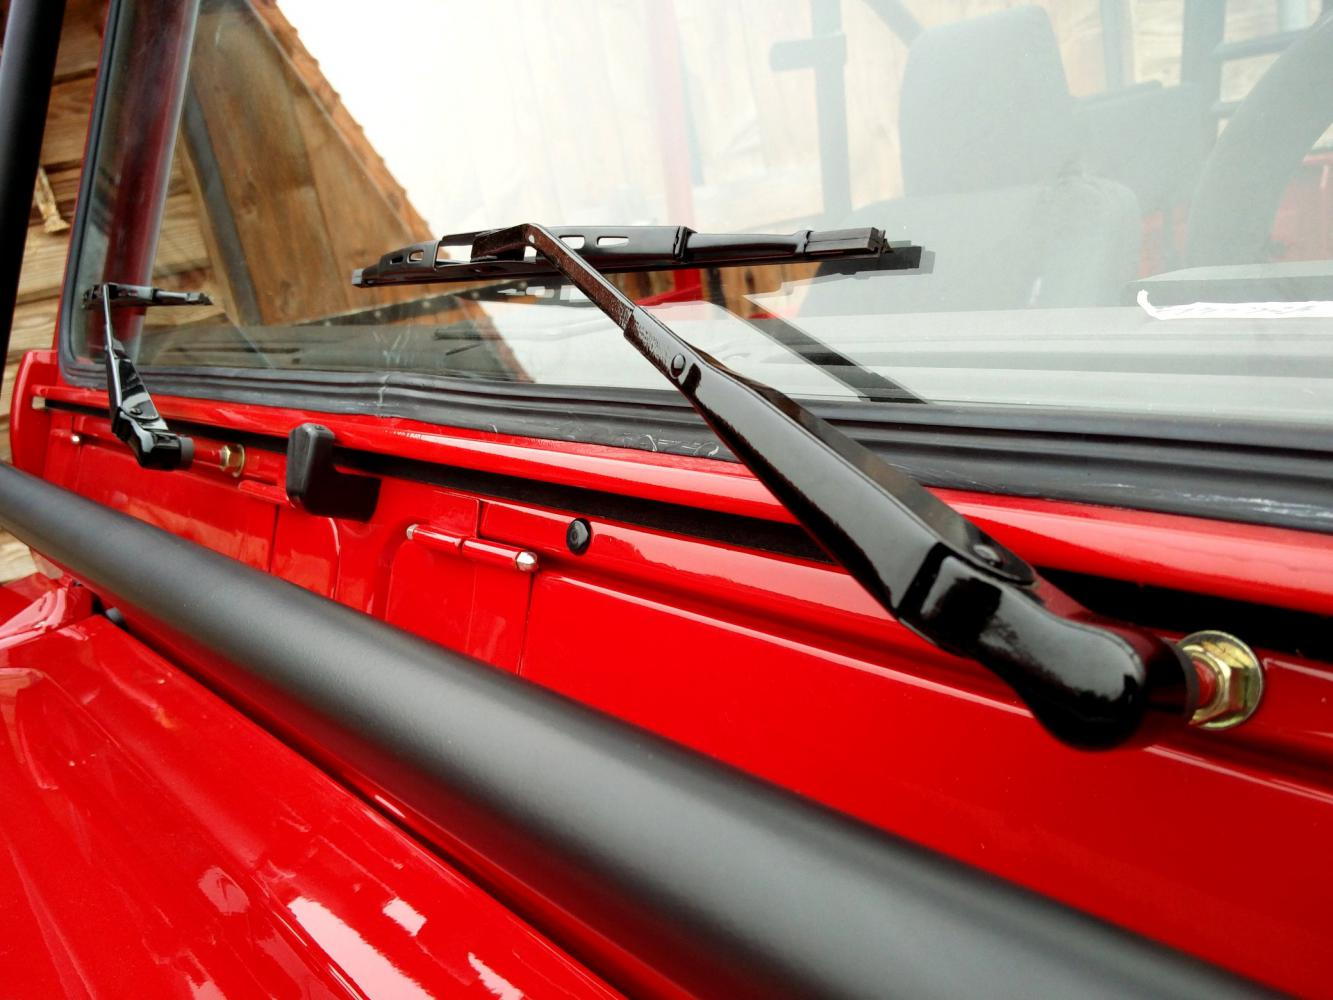 Click image for larger version  Name:1992 LR LHD Defender 90 Red 200 Tdi A day 15  close wipers.jpg Views:60 Size:126.9 KB ID:323833